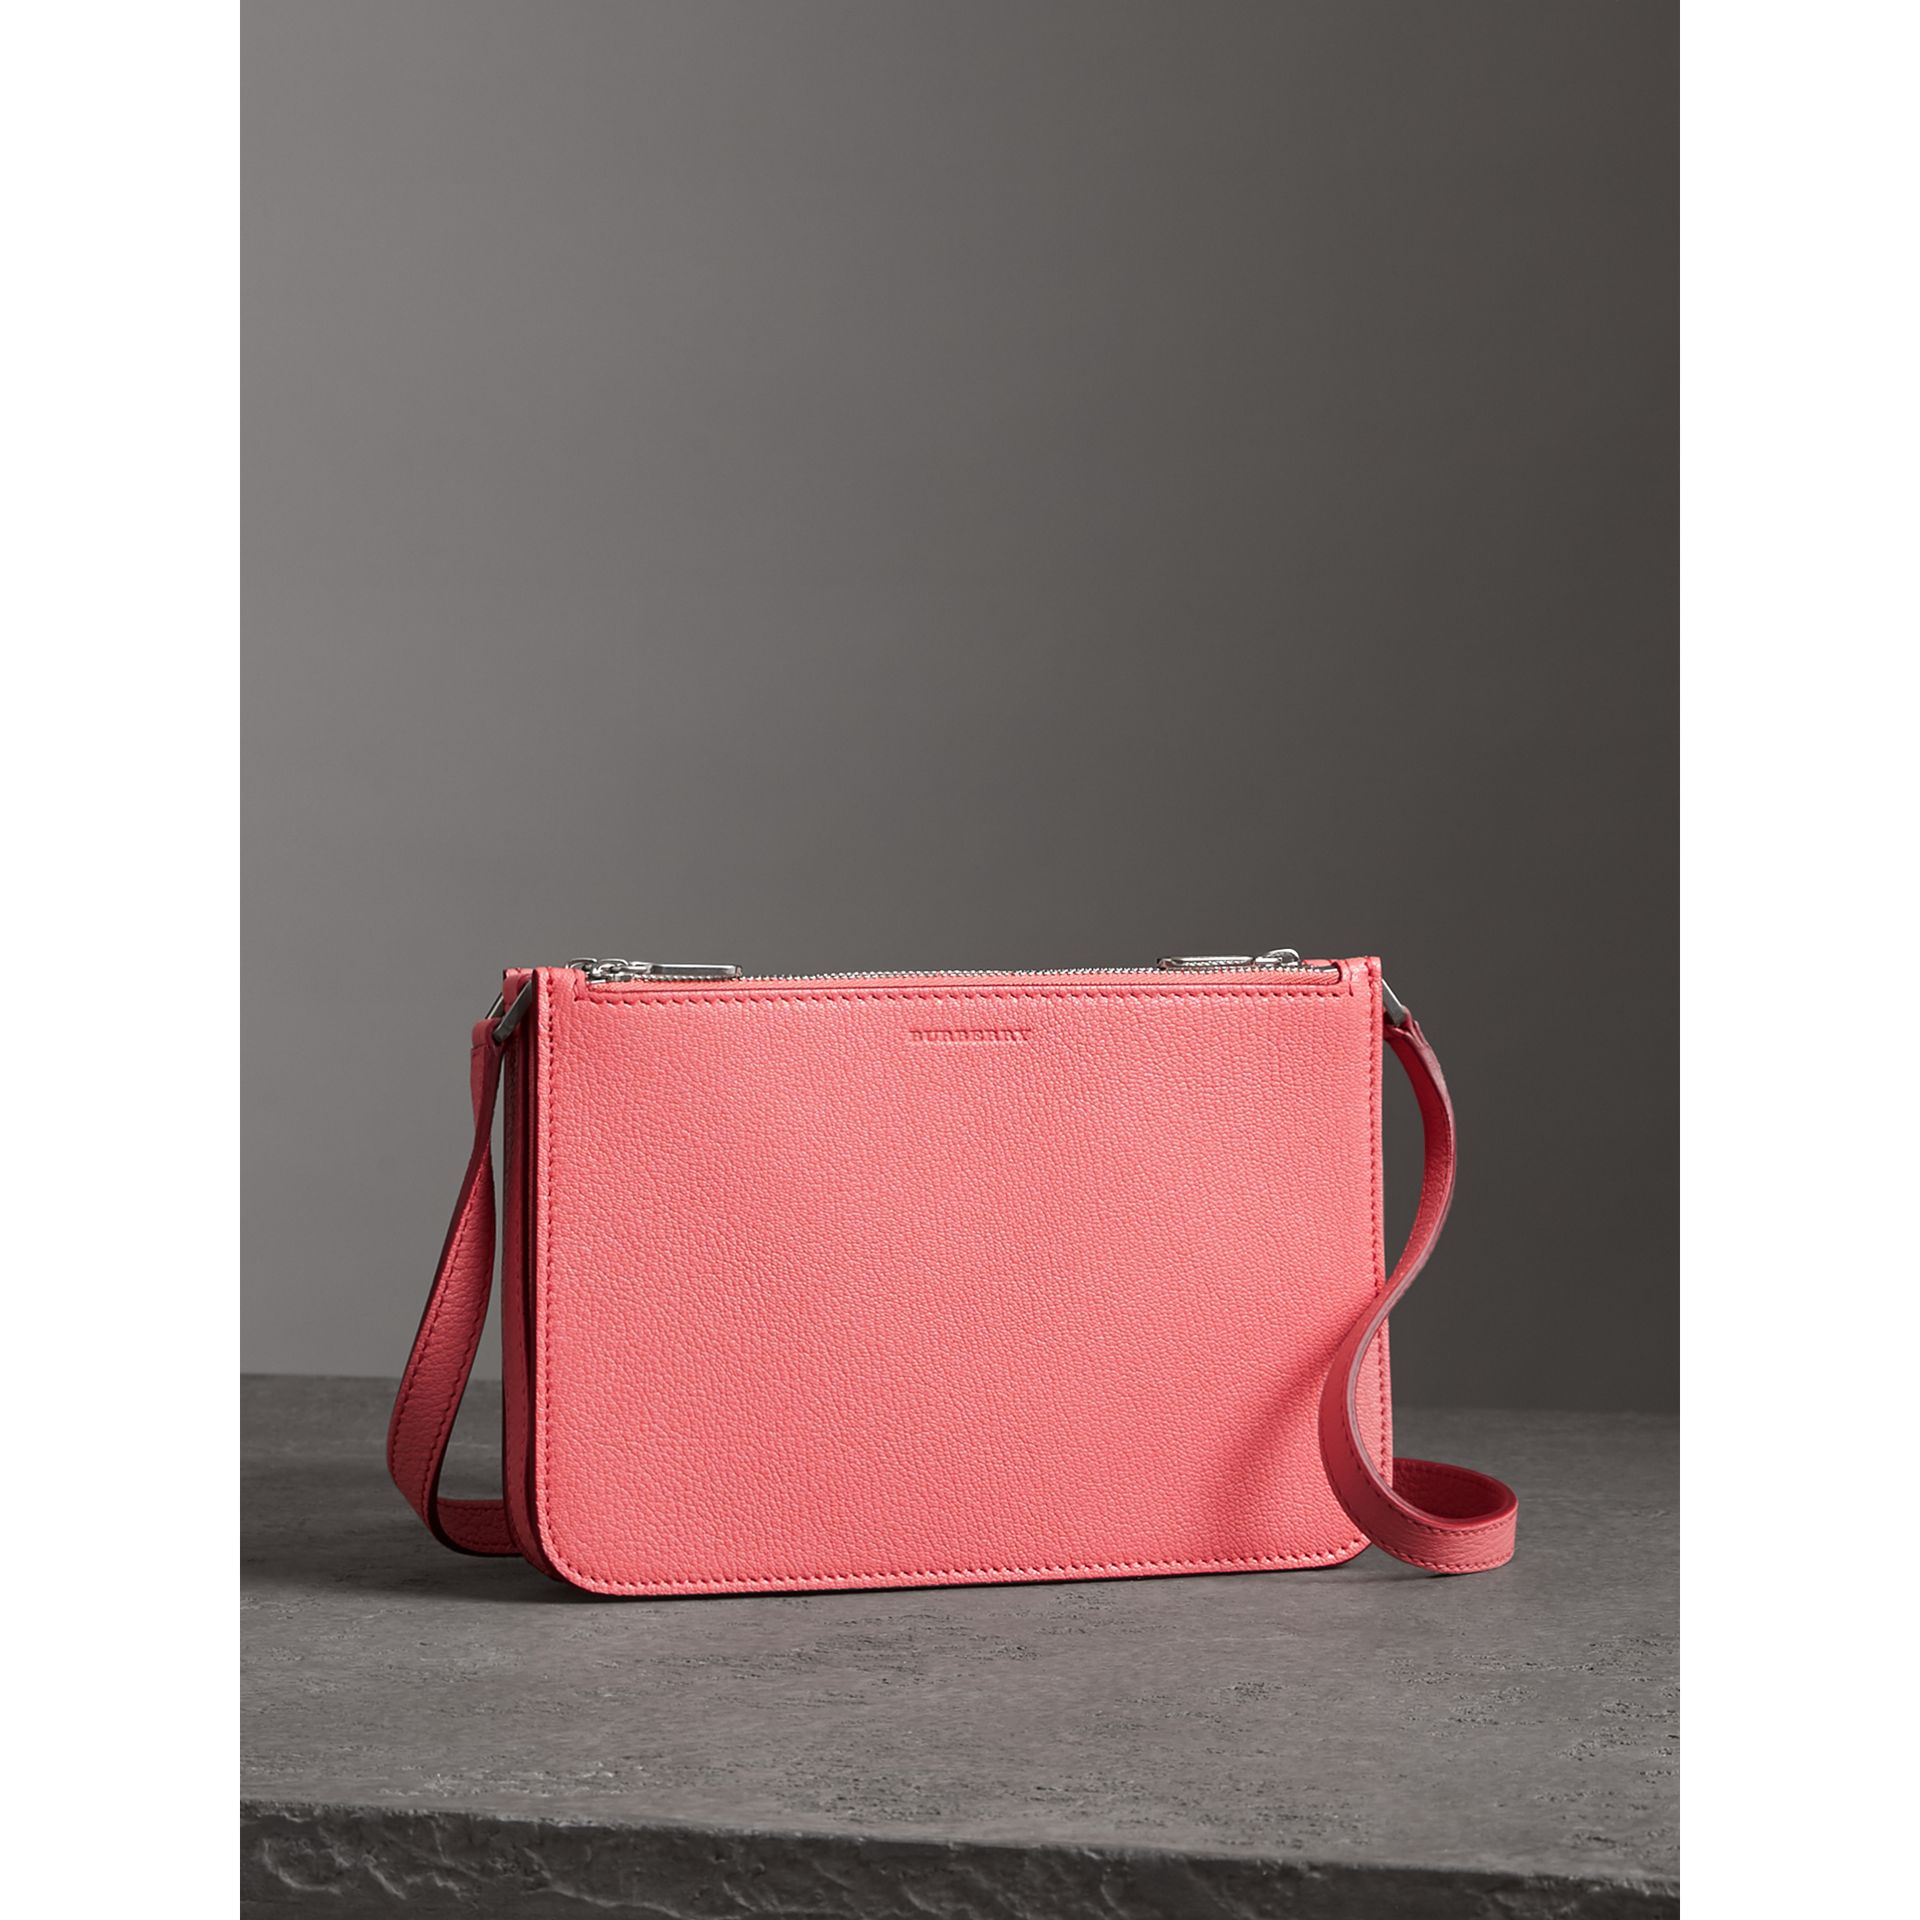 Triple Zip Grainy Leather Crossbody Bag in Bright Coral Pink - Women | Burberry Australia - gallery image 4